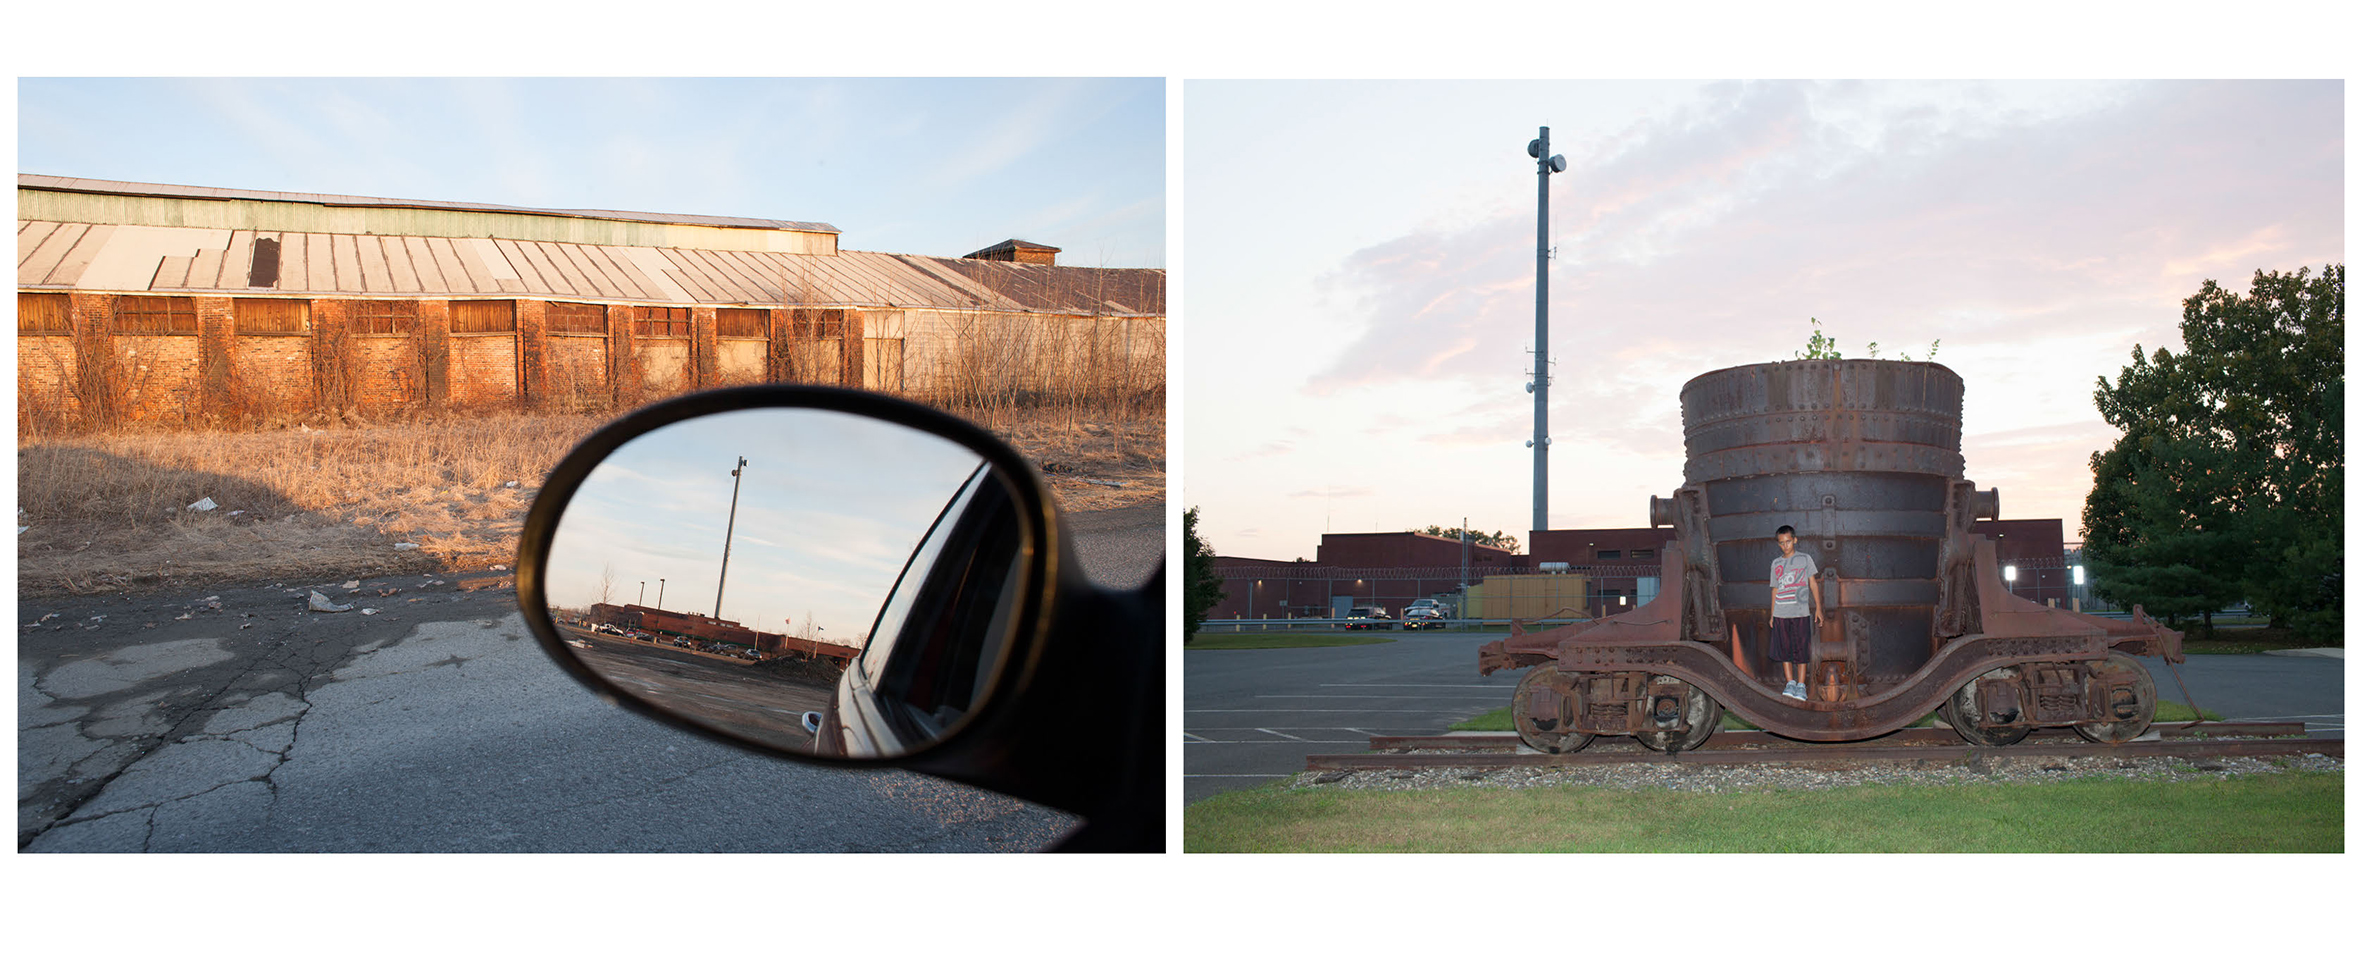 Left: The ruinous remains of the mighty Burden Iron Works.  South Troy, NY. 2008.                                A view of an expanding Rensselaer County Jail in my rearview mirror.                                                              Right: Tony in front of Ladle Car outside Burden Iron works Museum with Rensselaer County Jail in the background.  Troy, NY. 2014.